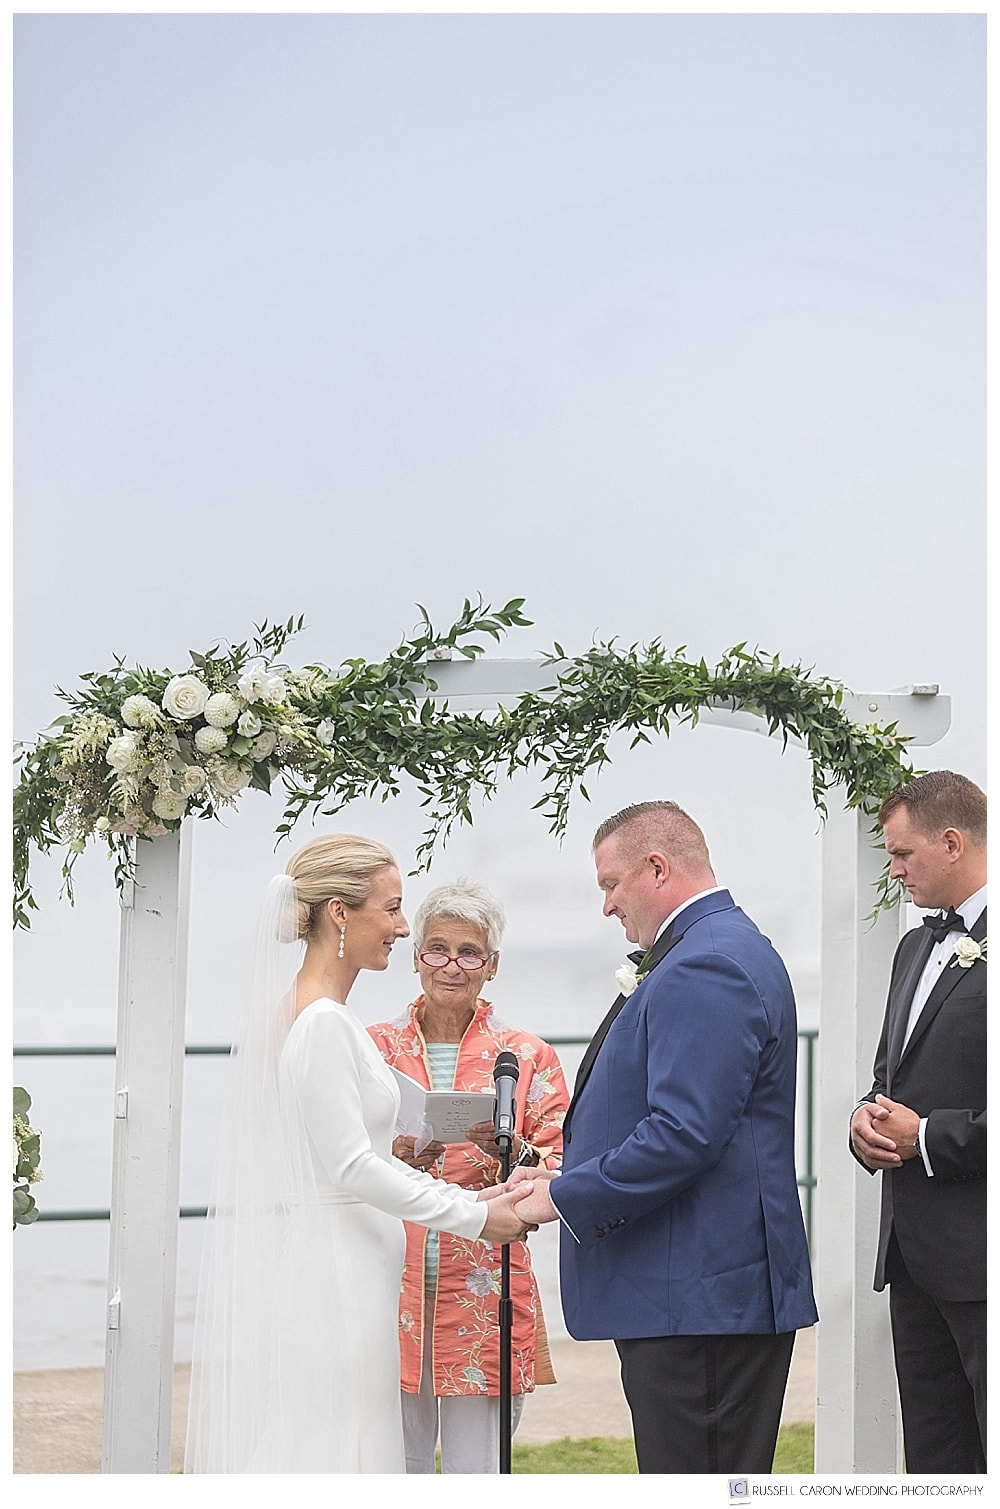 bride and groom during outdoor wedding ceremony at the Newagen Seaside Inn, Southport Island, Maine